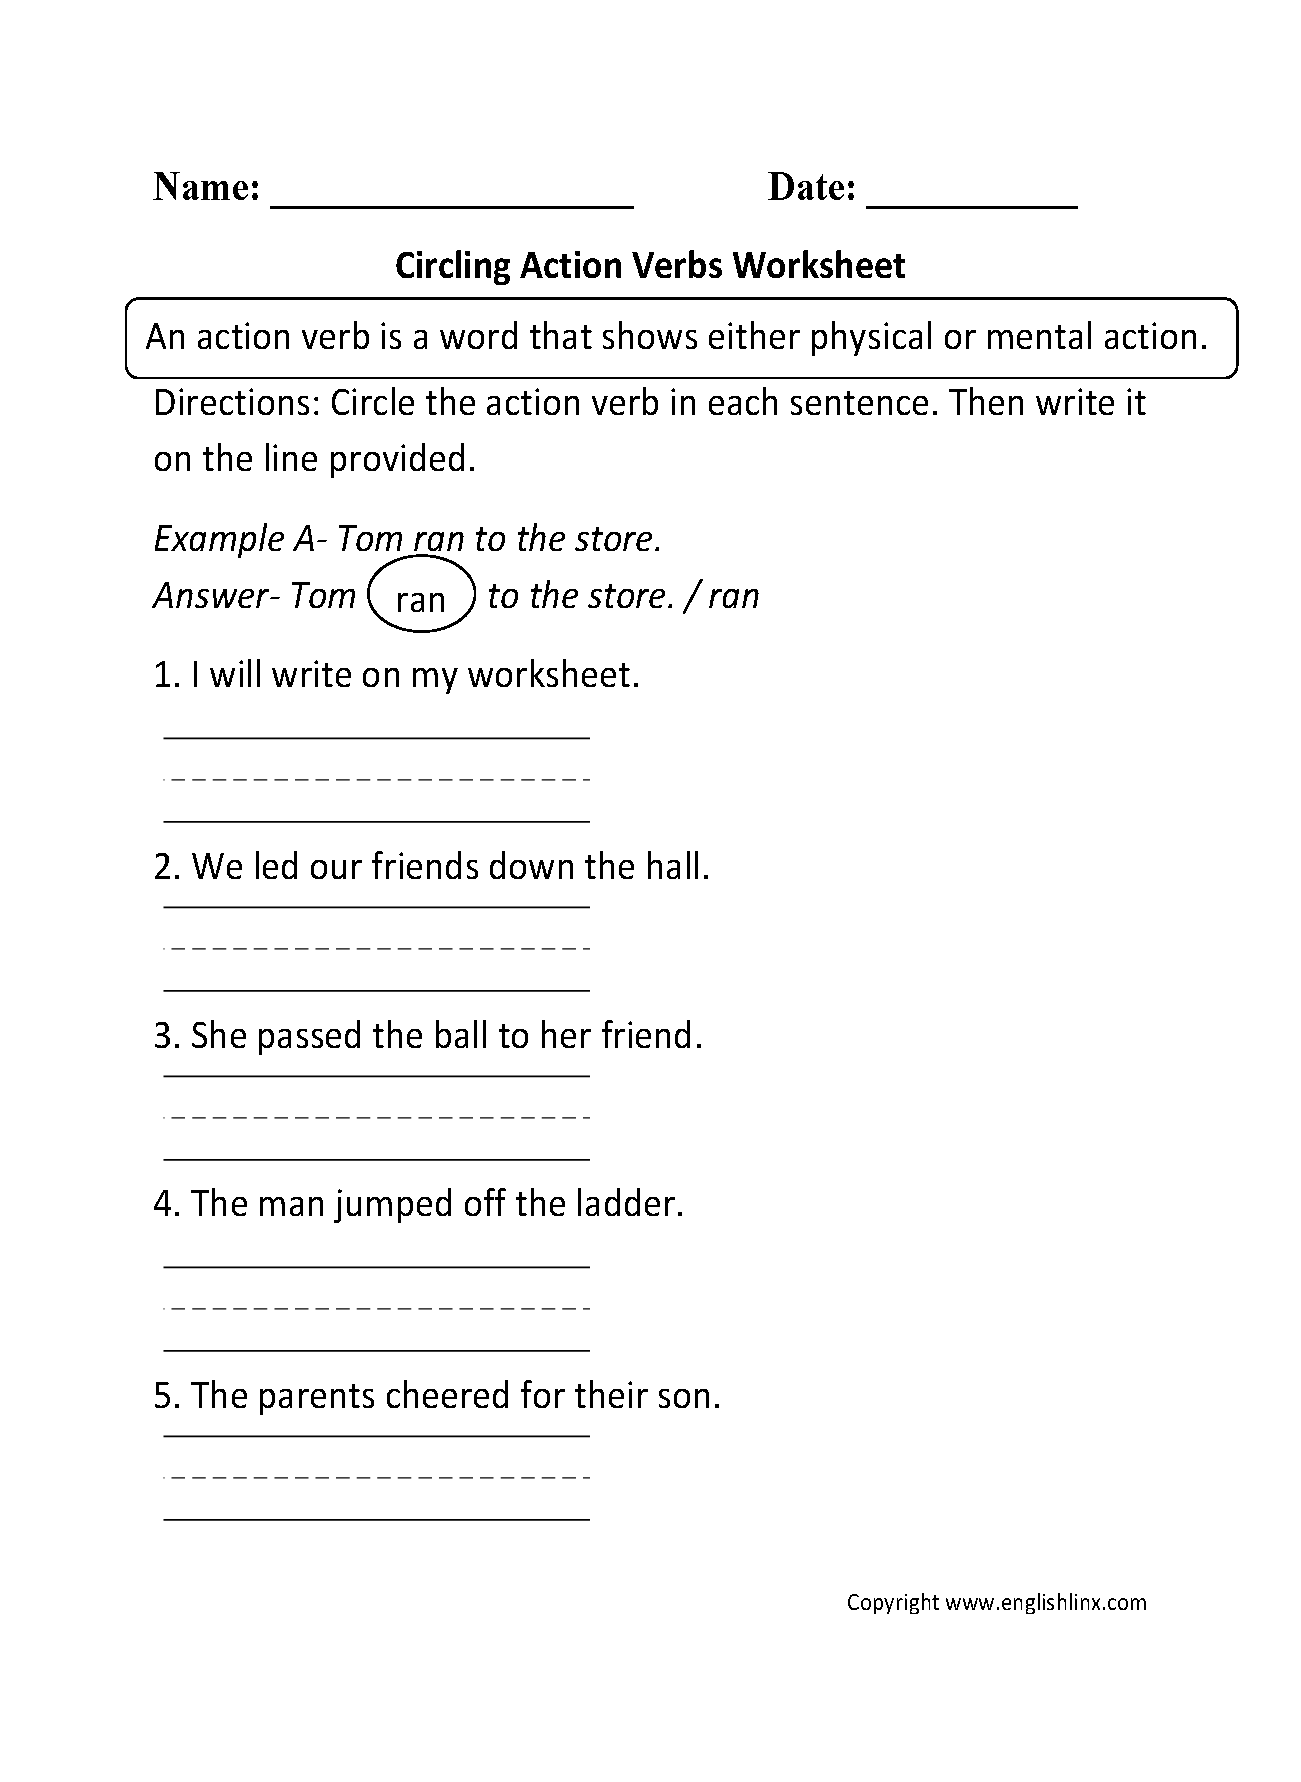 Writing future tense of verb worksheet turtle diary - Verbs Worksheets Action Verbs Worksheets Action Verbs Worksheet